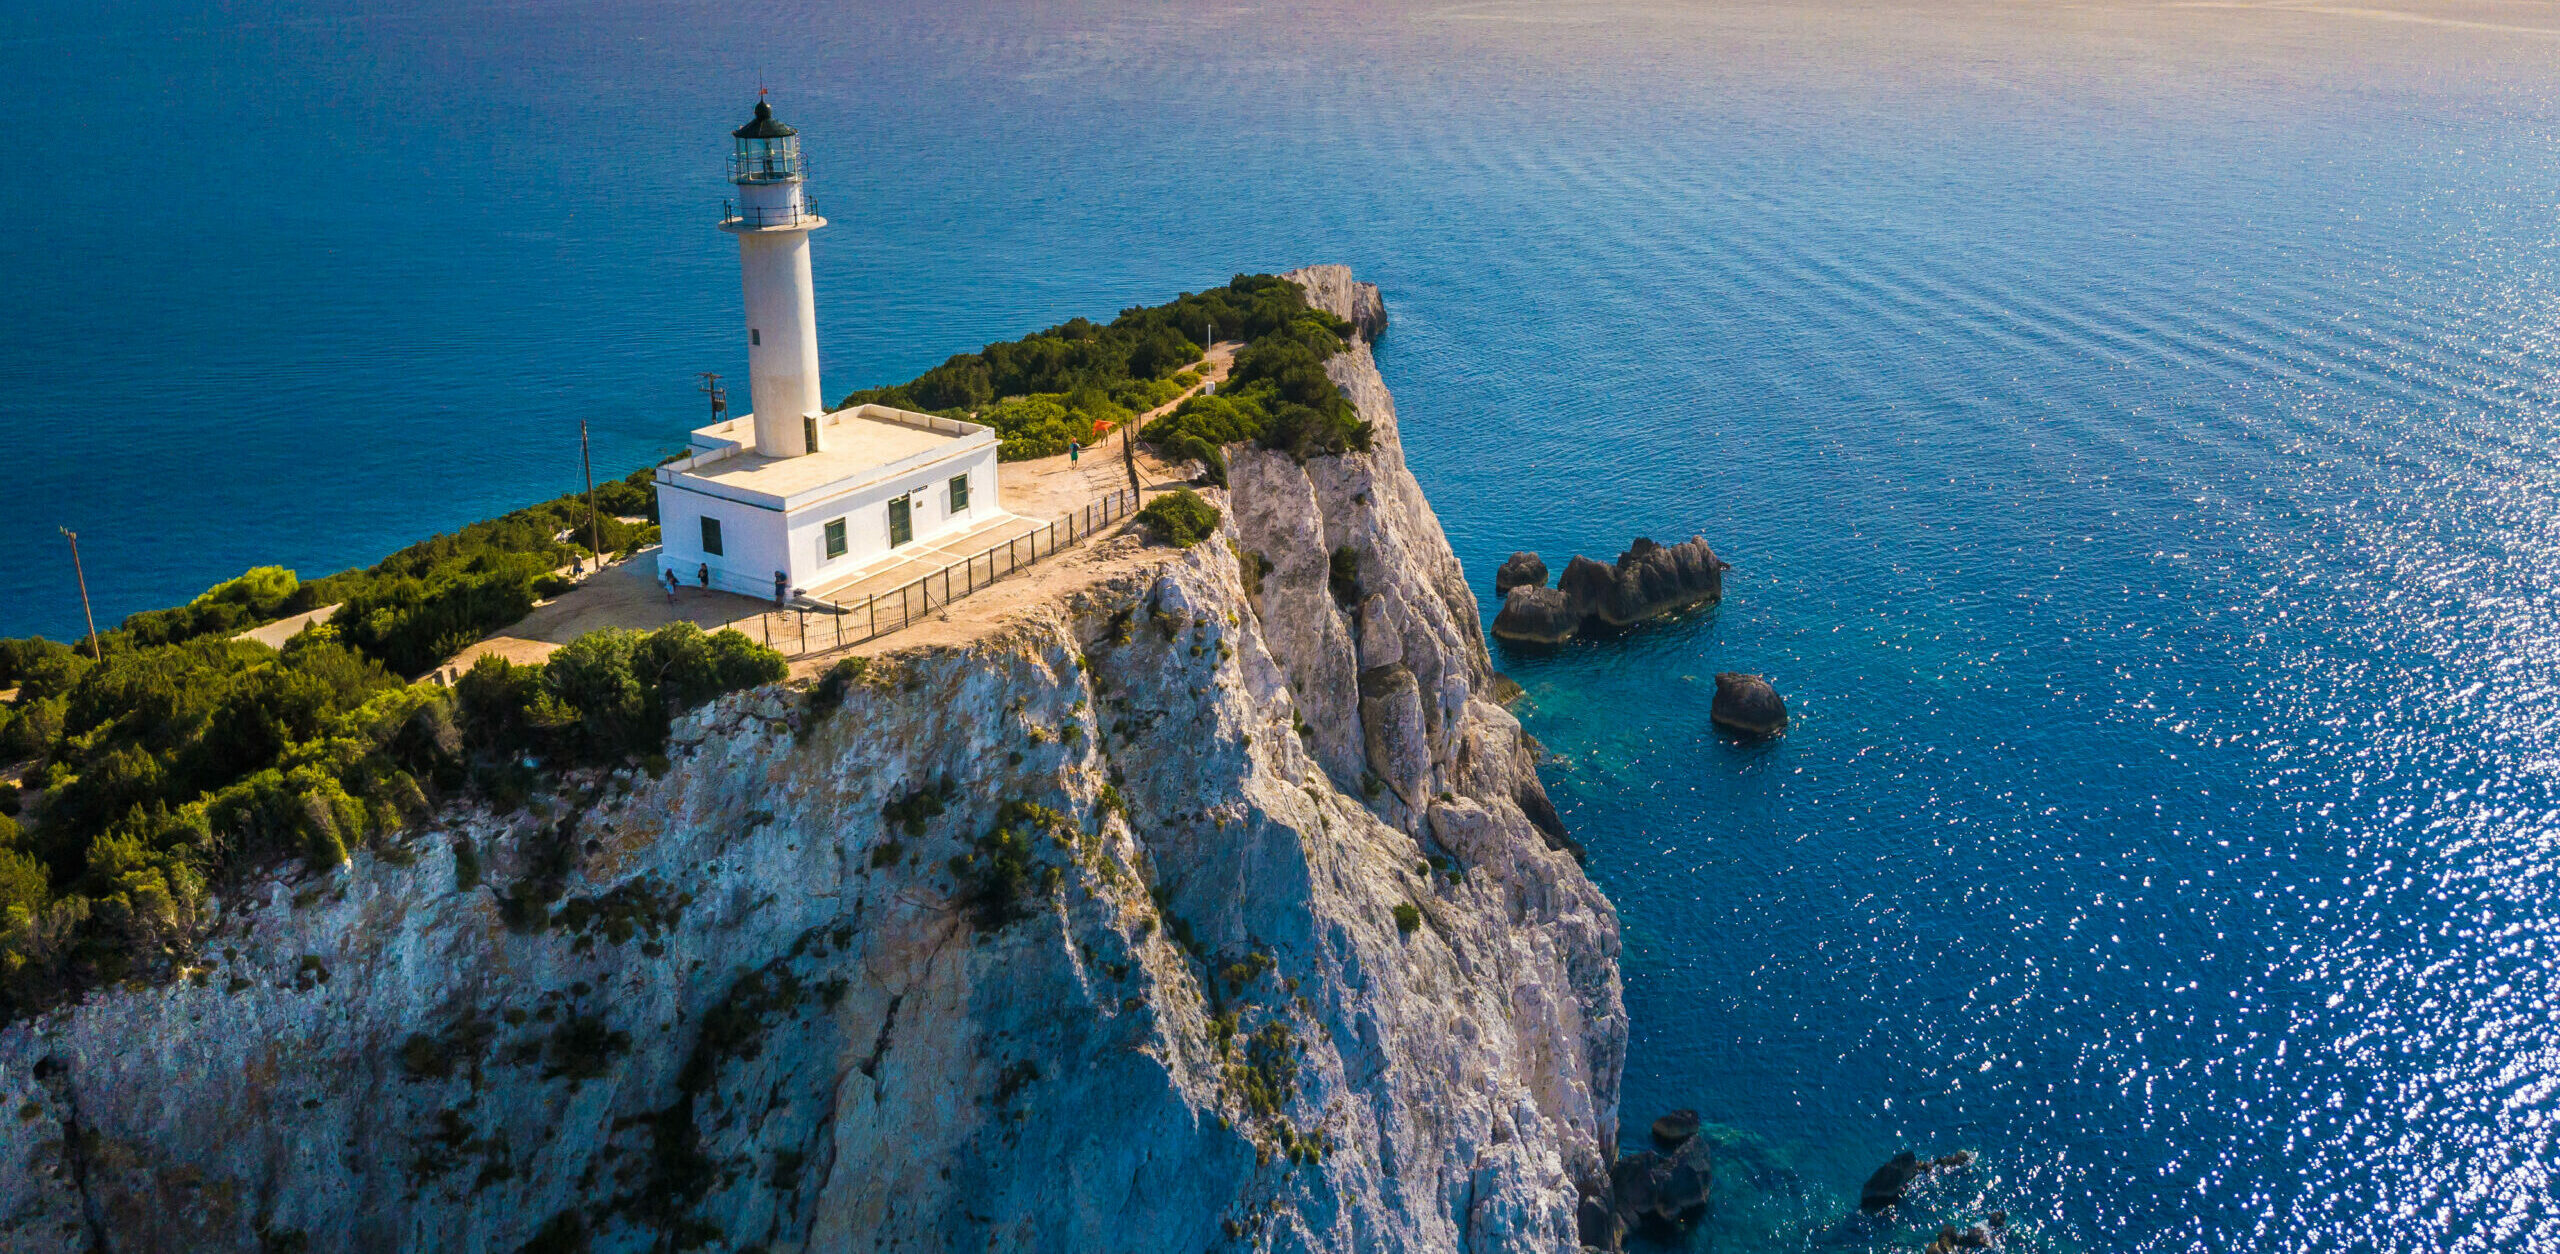 Lefkada: Doukato, the lighthouse of Greece and the mysterious legend of lovers